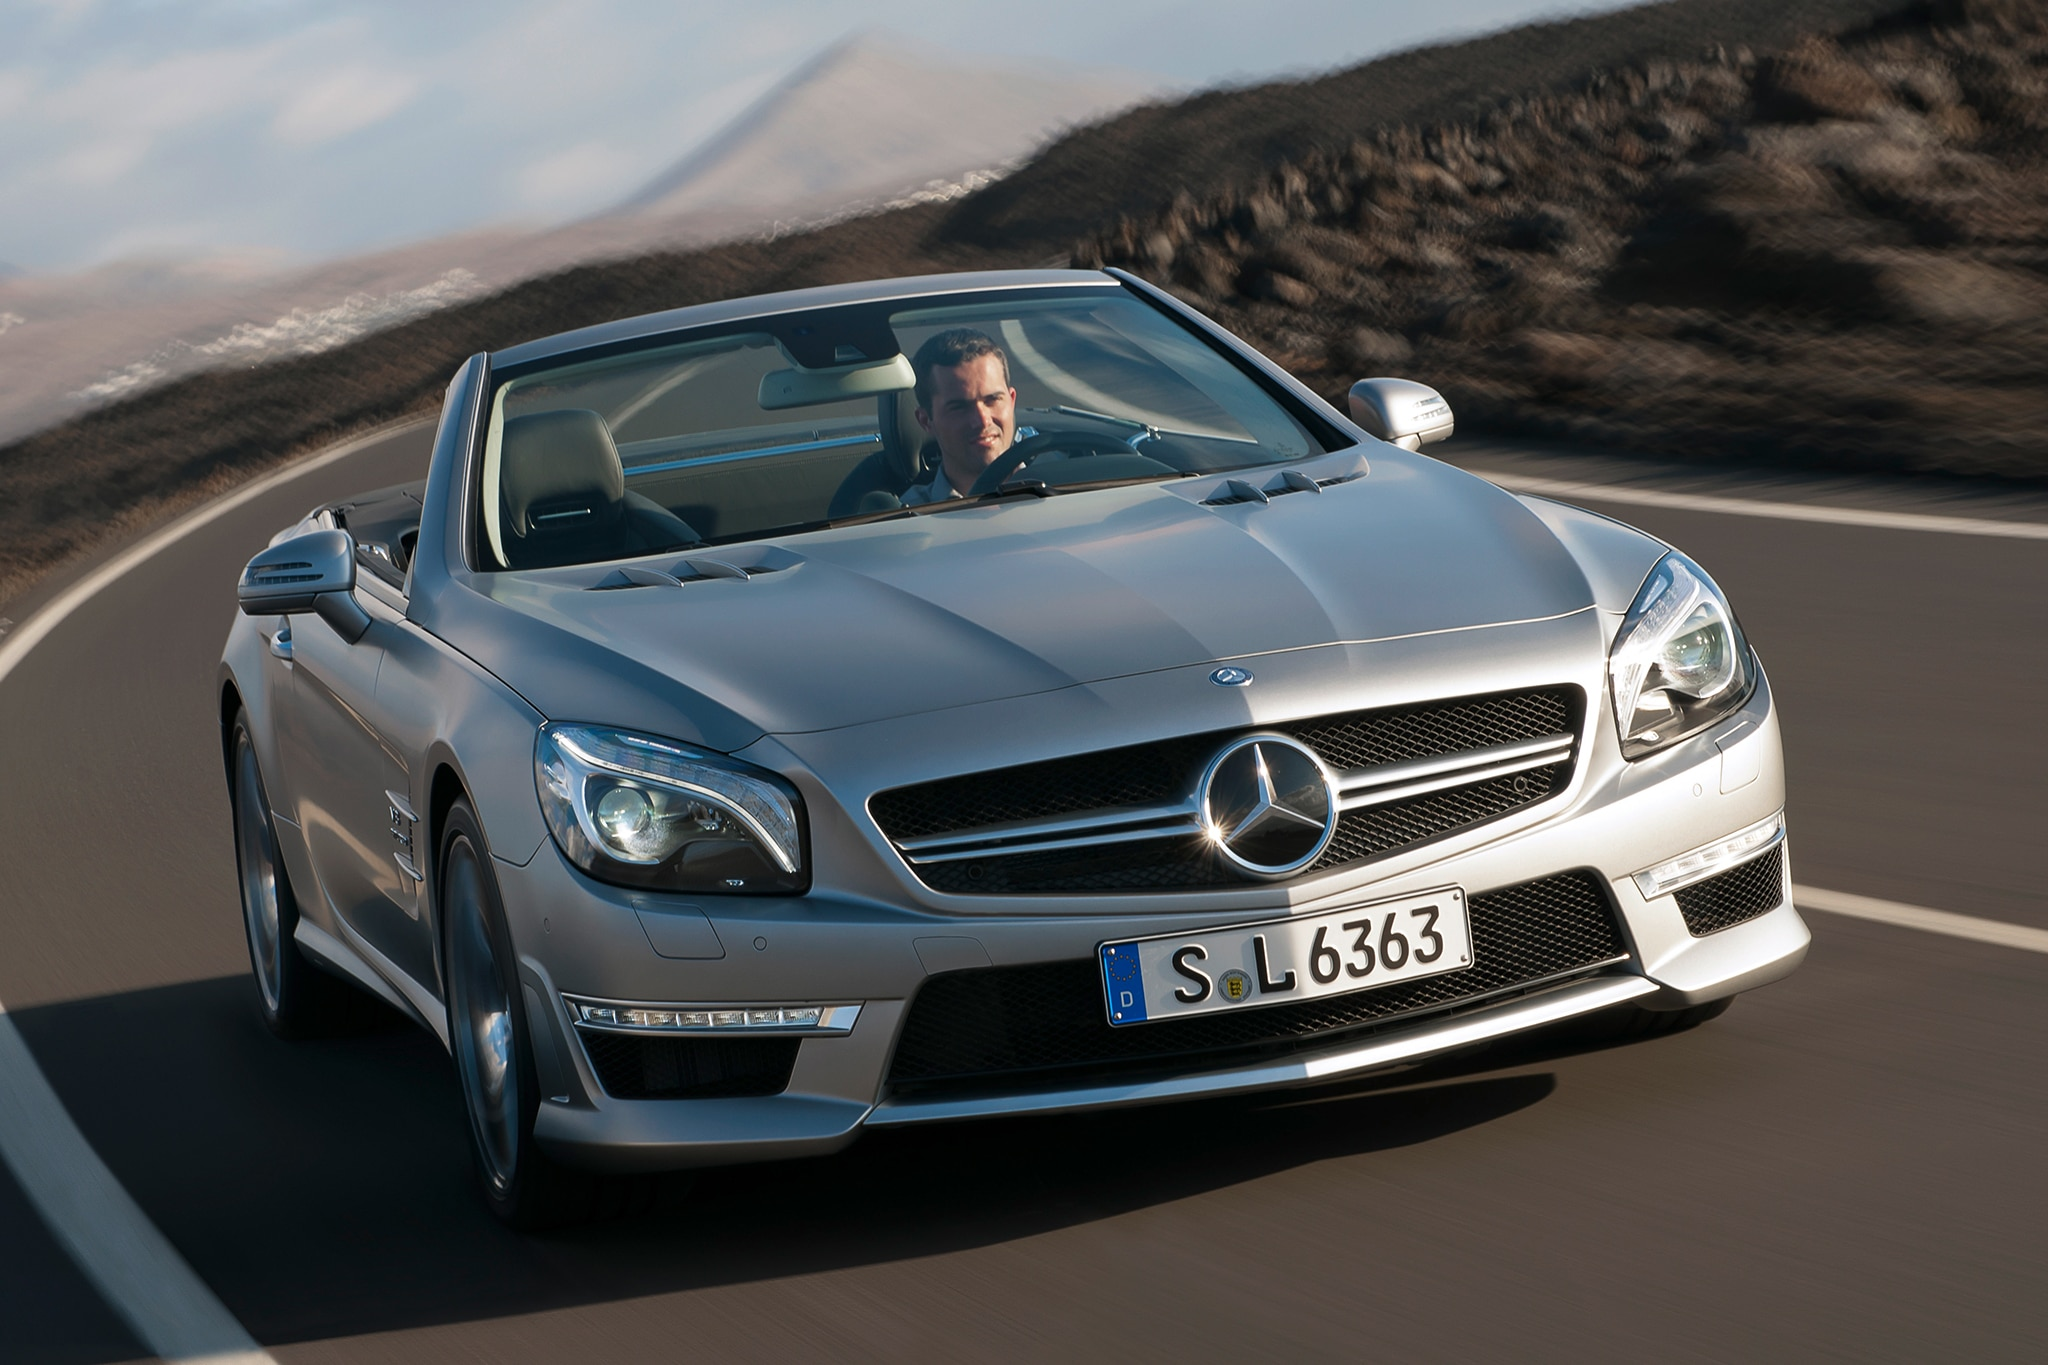 2013 Mercedes Benz SL63 AMG Three Quarters View 191